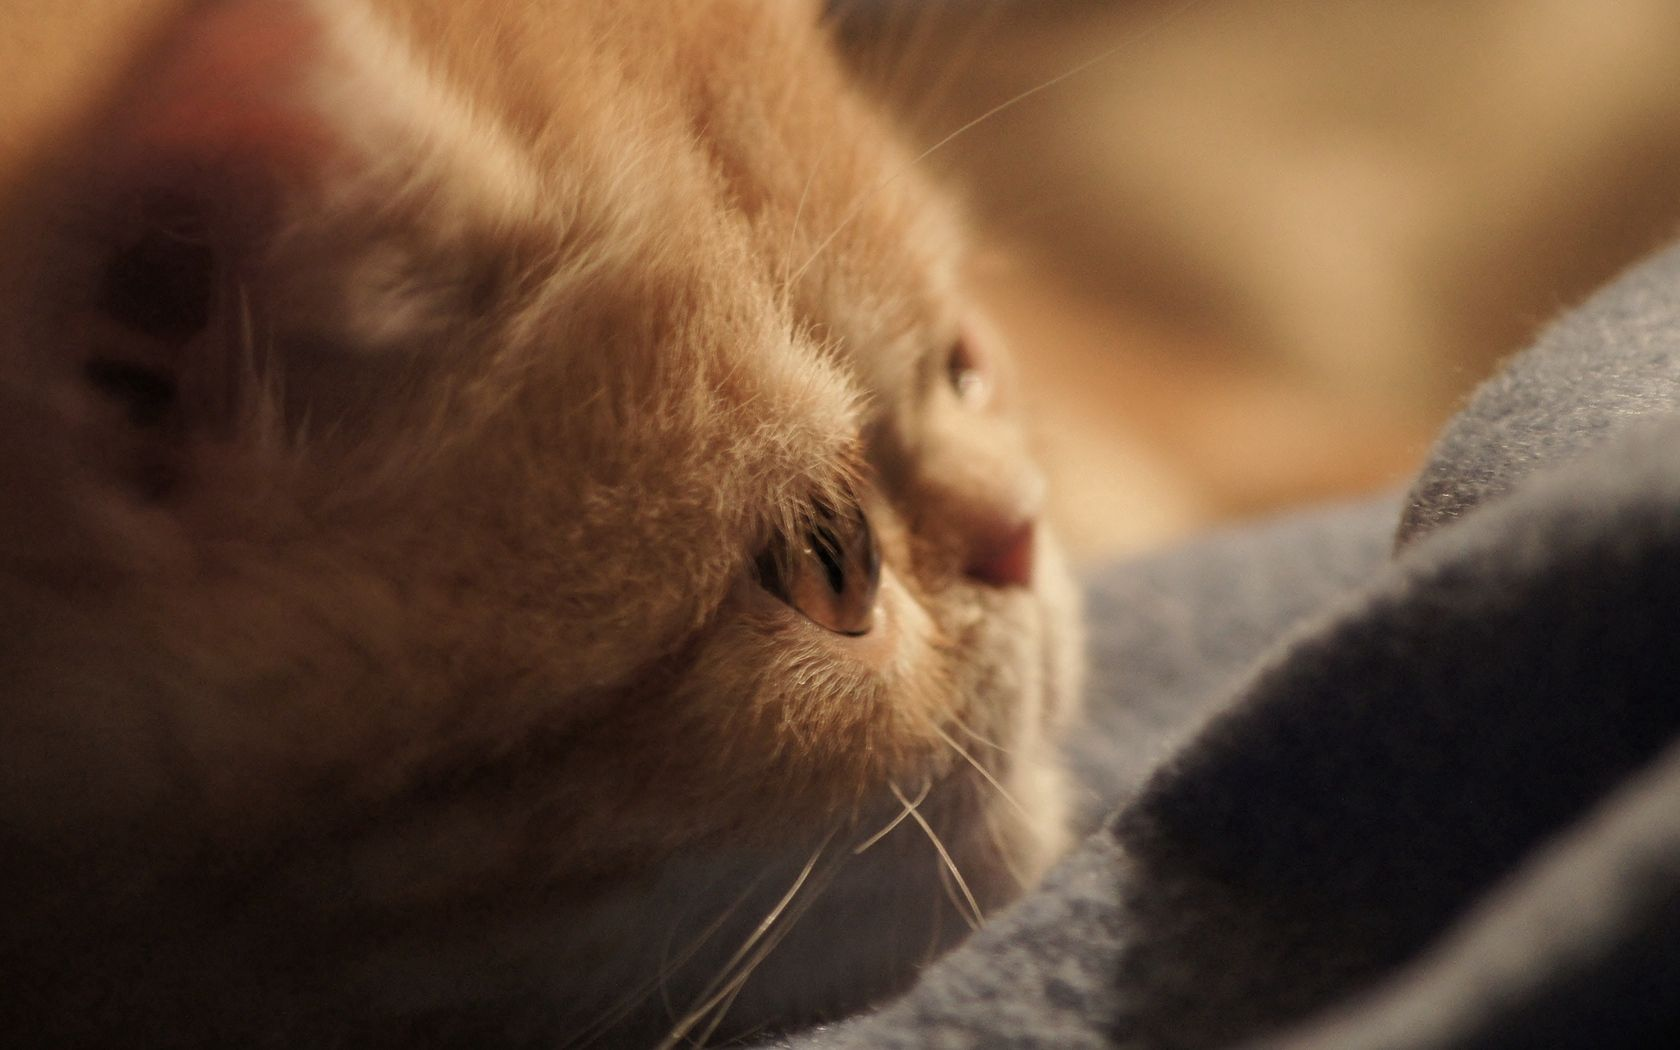 90819 download wallpaper Animals, Kitty, Kitten, Cat, Nice, Sweetheart, Muzzle screensavers and pictures for free